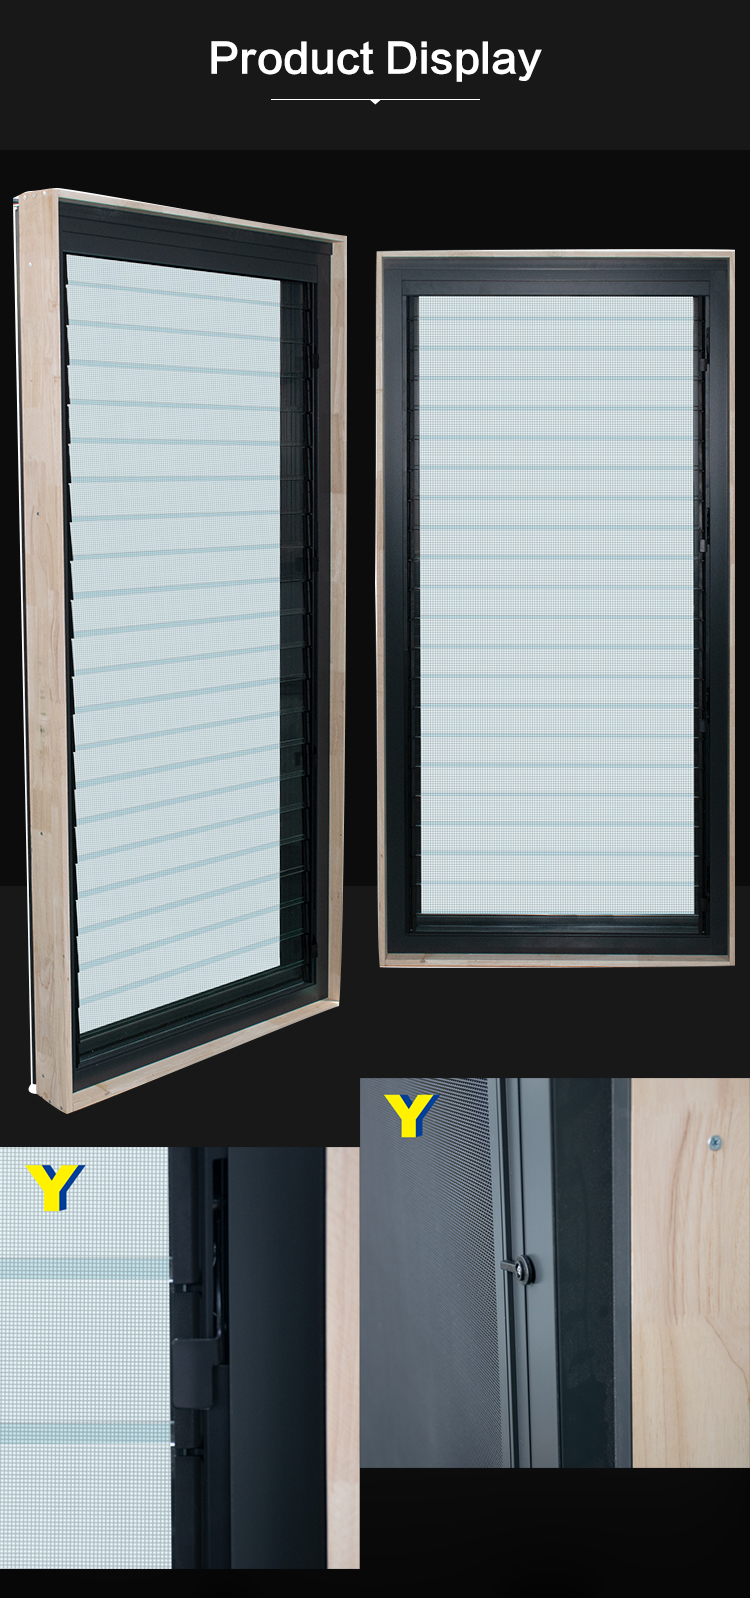 Plantation Shutters From China Aluminium Louver Security Shutters Buy Outdoor Plantation Shutters Rolling Security Shutters Exterior Aluminum